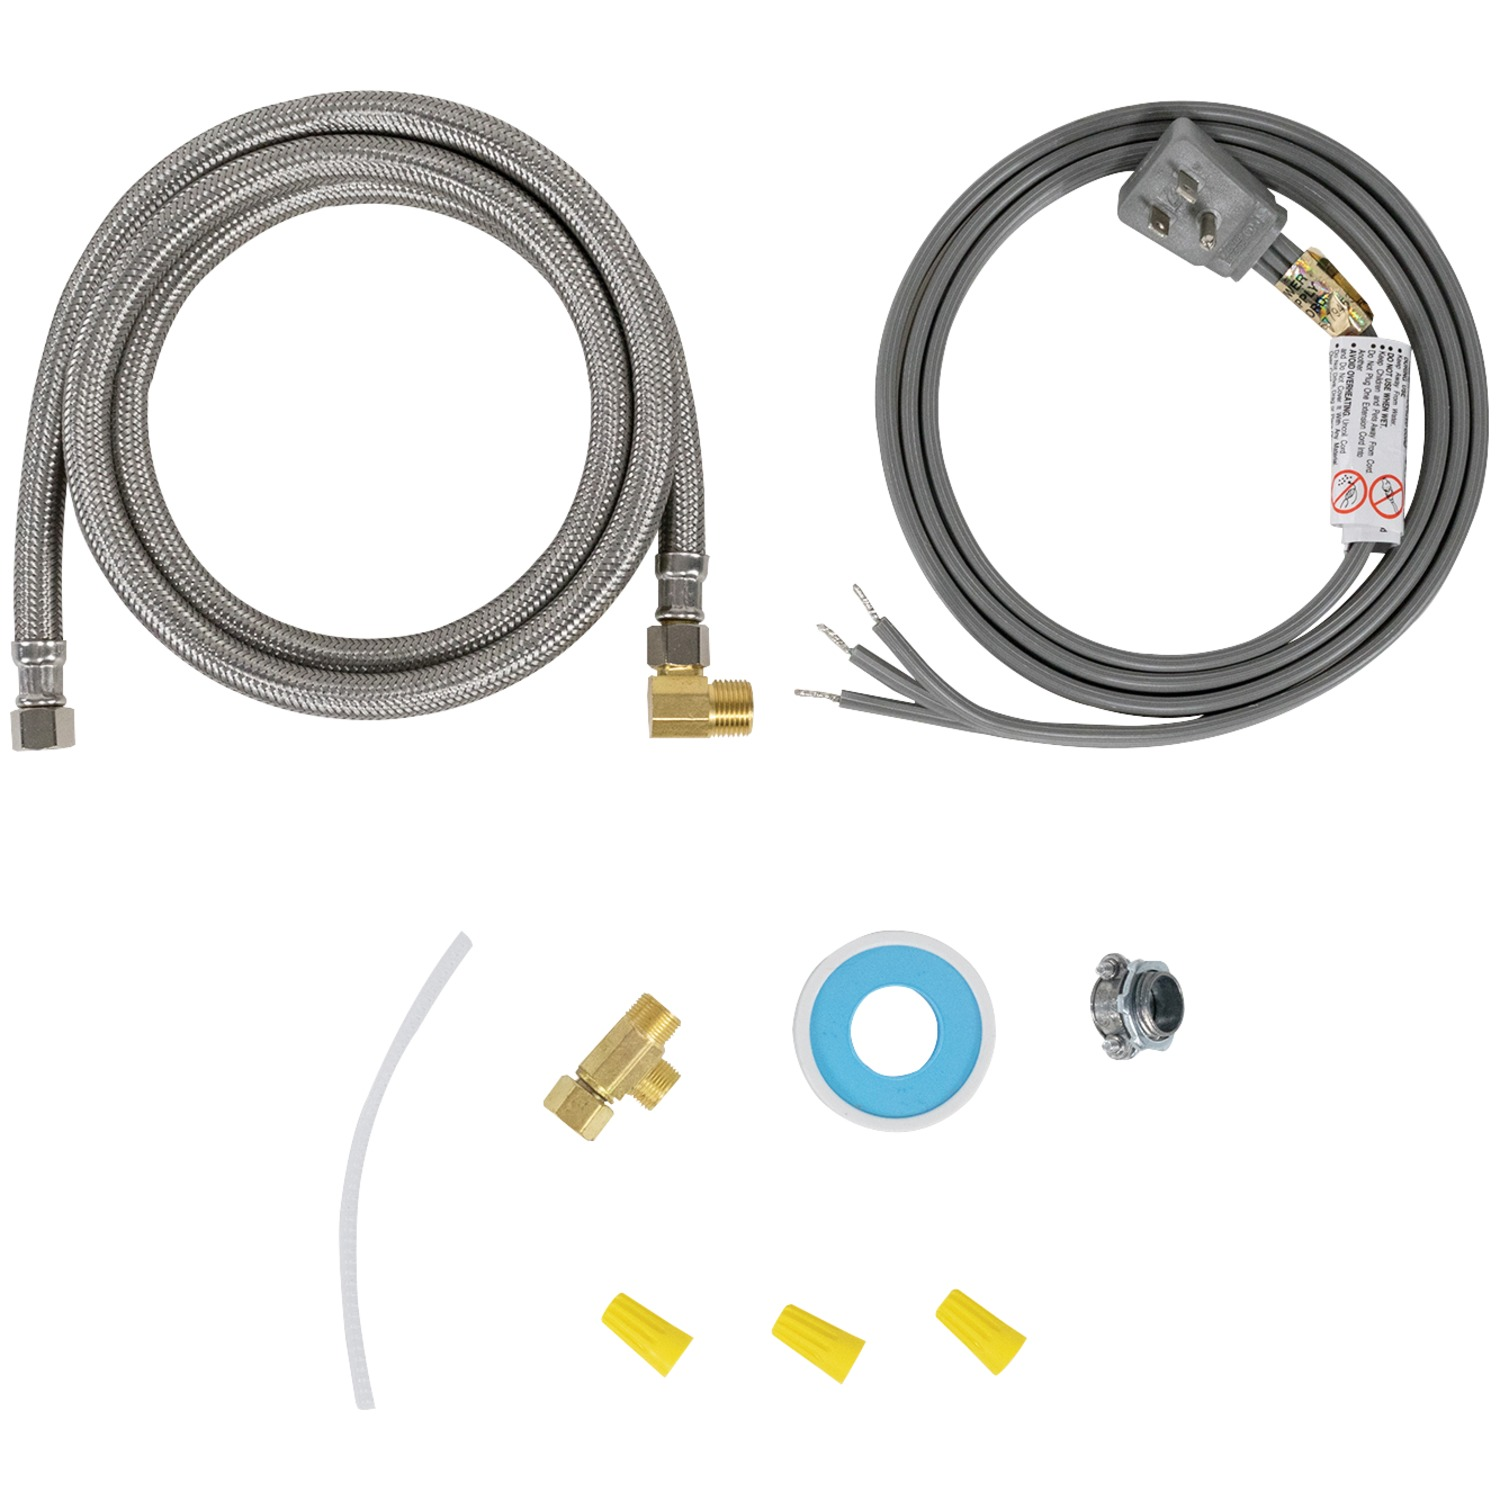 Certified Appliance Accessories 77805 Braided Stainless Steel Dishwasher Installation Kit, 6ft